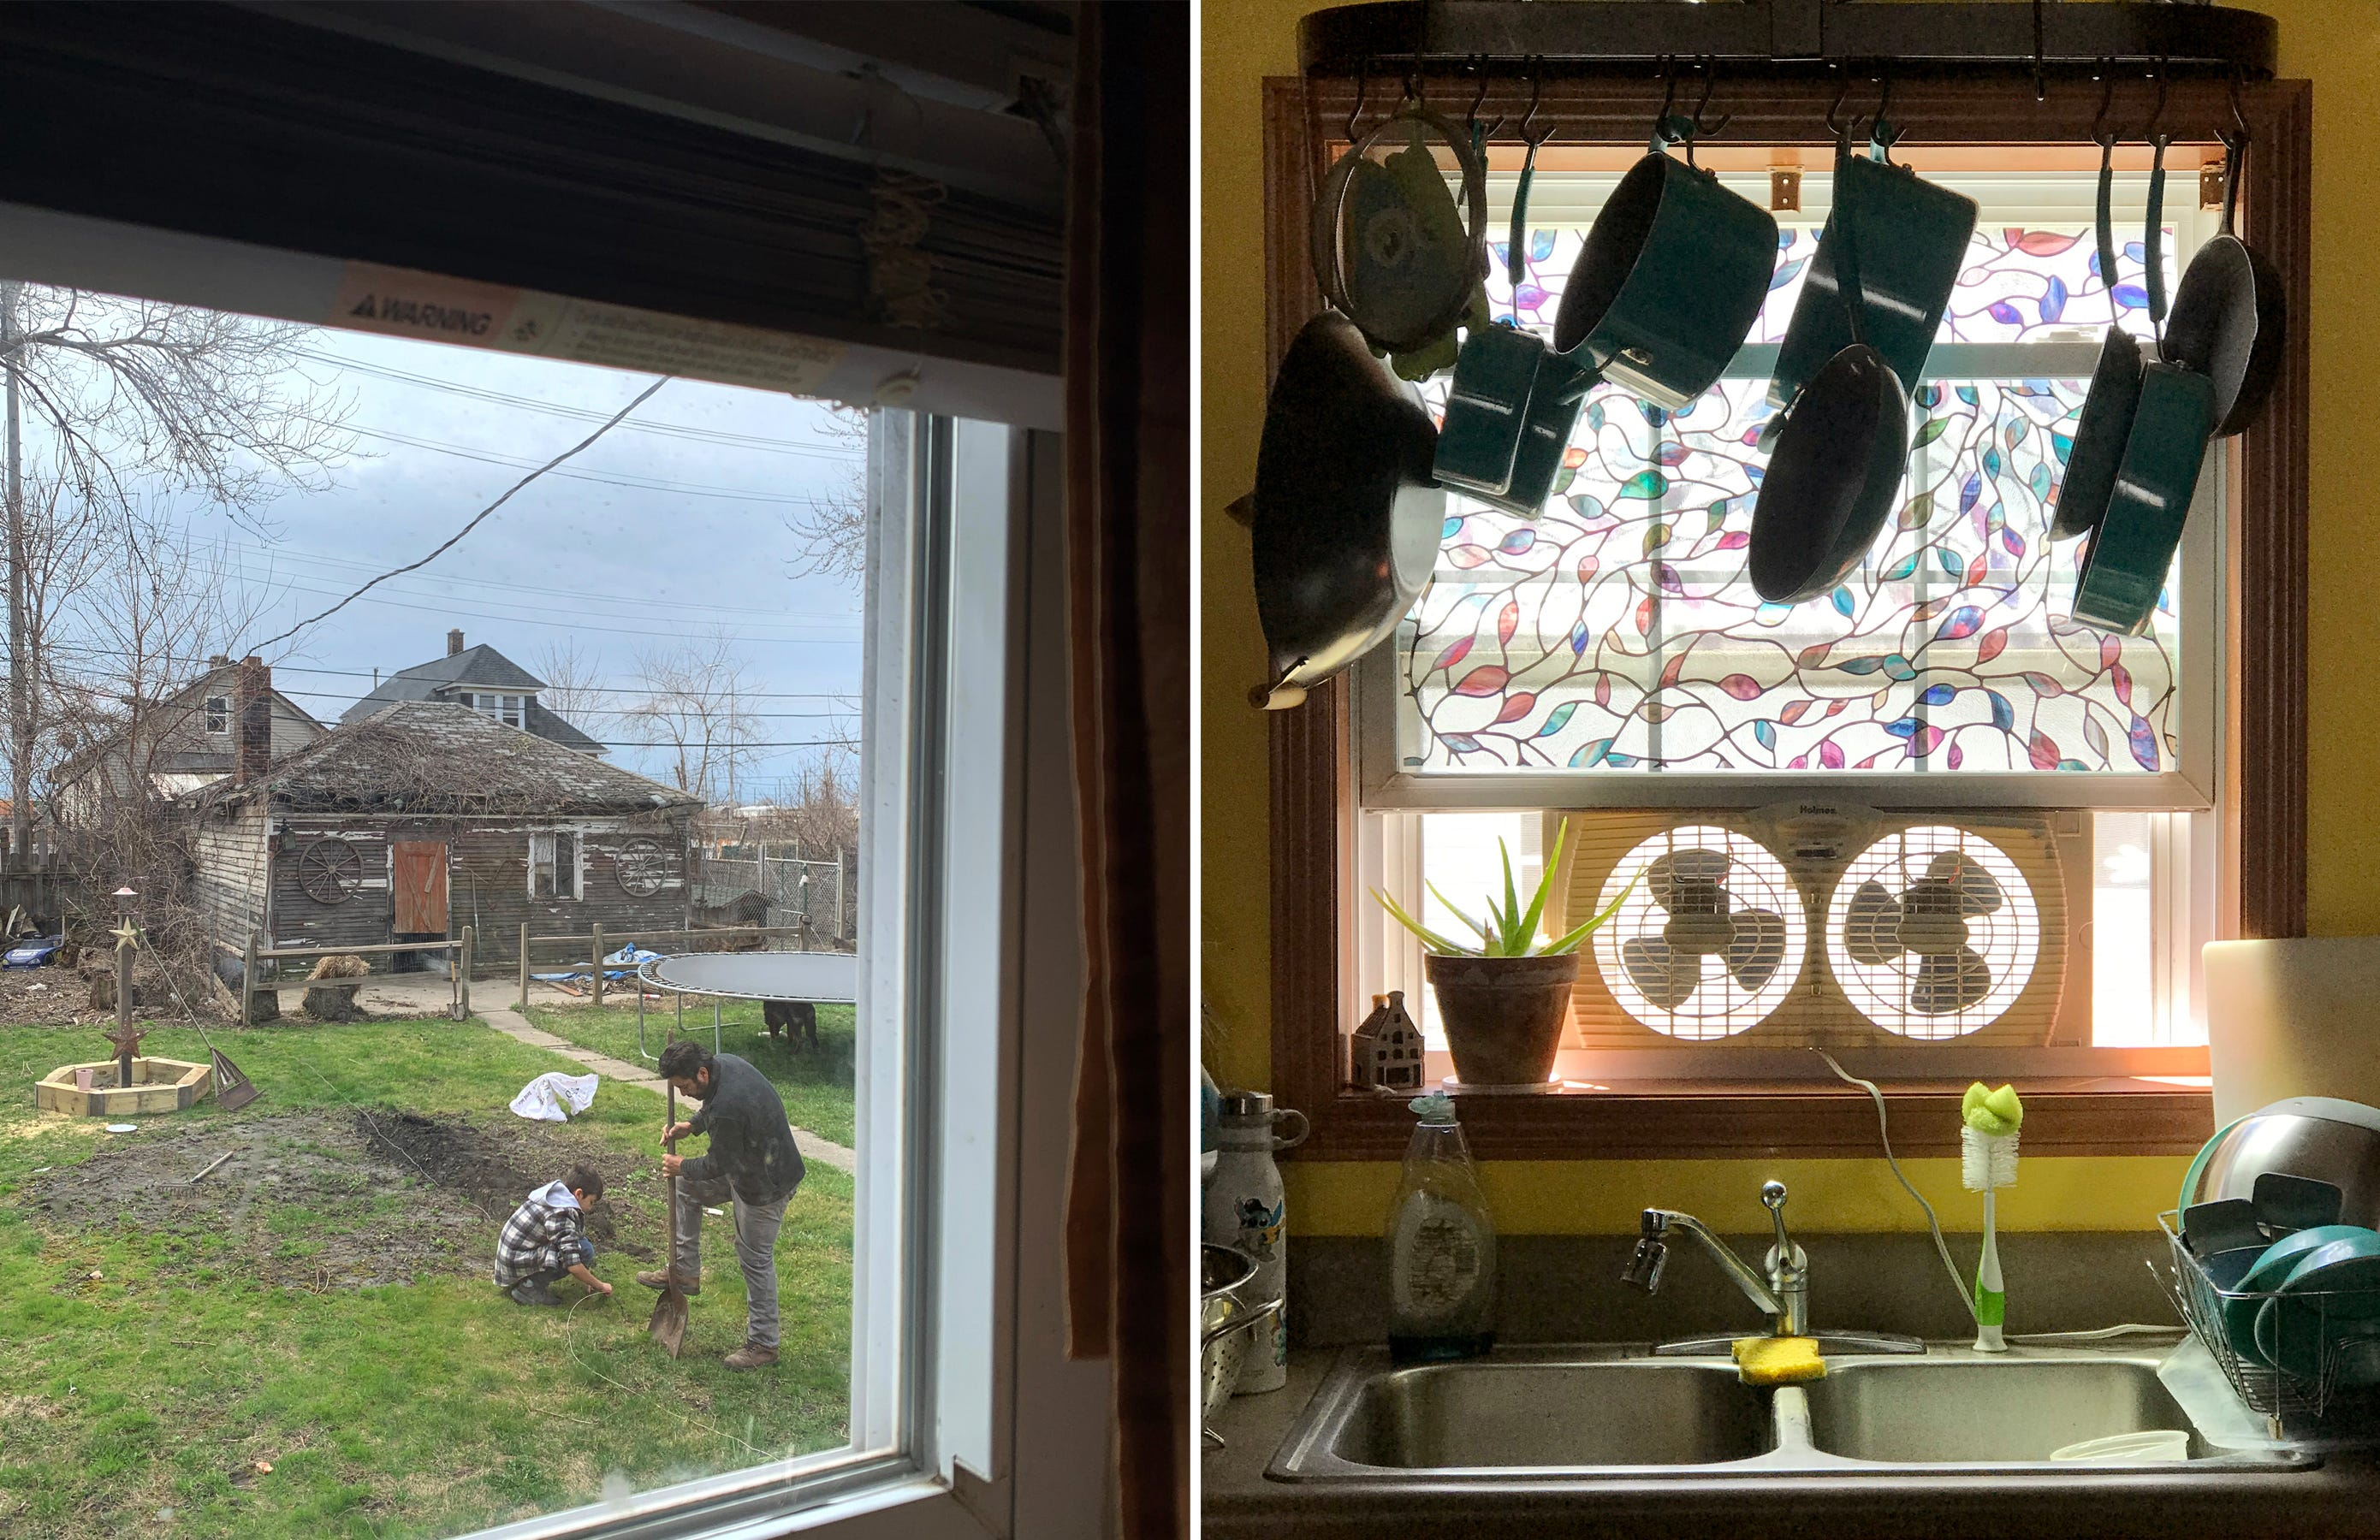 Left: My brother Christopher Ruiz, 12, and father Angel Ruiz, 43, build a garden in our backyard in Detroit on April 4, 2020. Most of our days during quarantine were filled with home improvements and hard work but most importantly, tons and tons and bonding time.  Right: Pots and pans hang above the sink in our kitchen at home in Detroit on June 12, 2020.